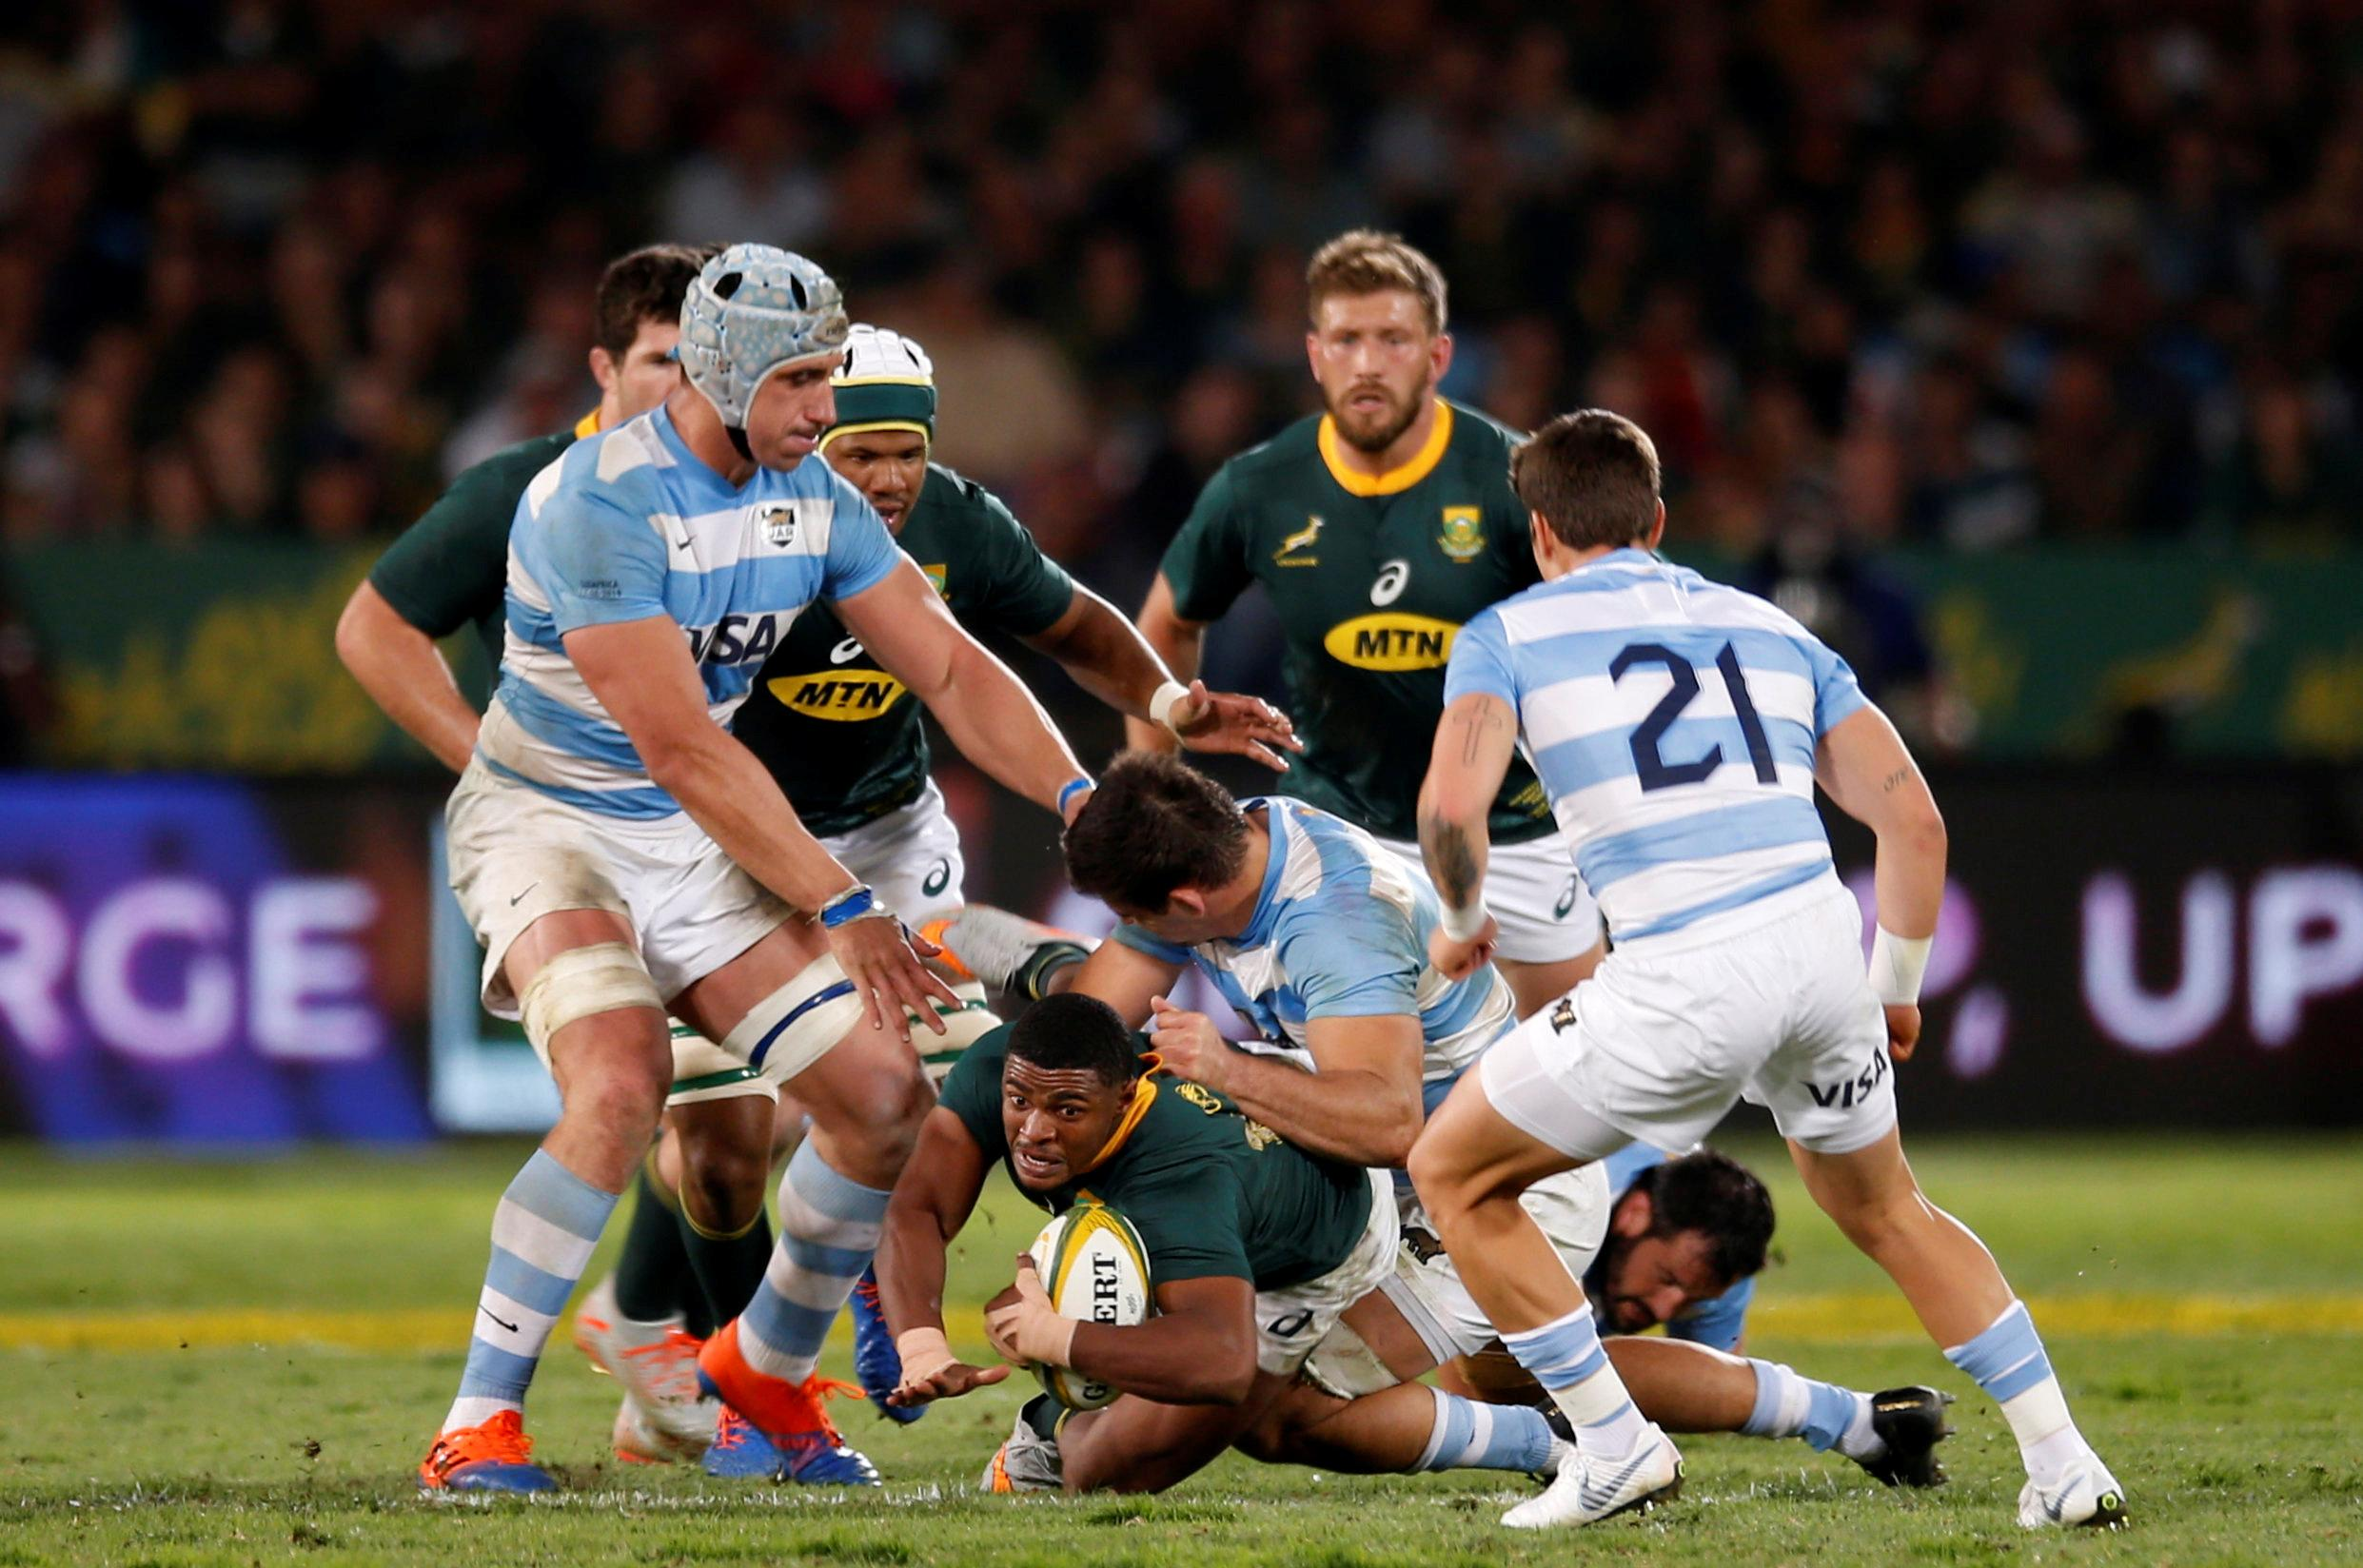 Dazzling Nkosi seals victory for lacklustre Boks over Argentina